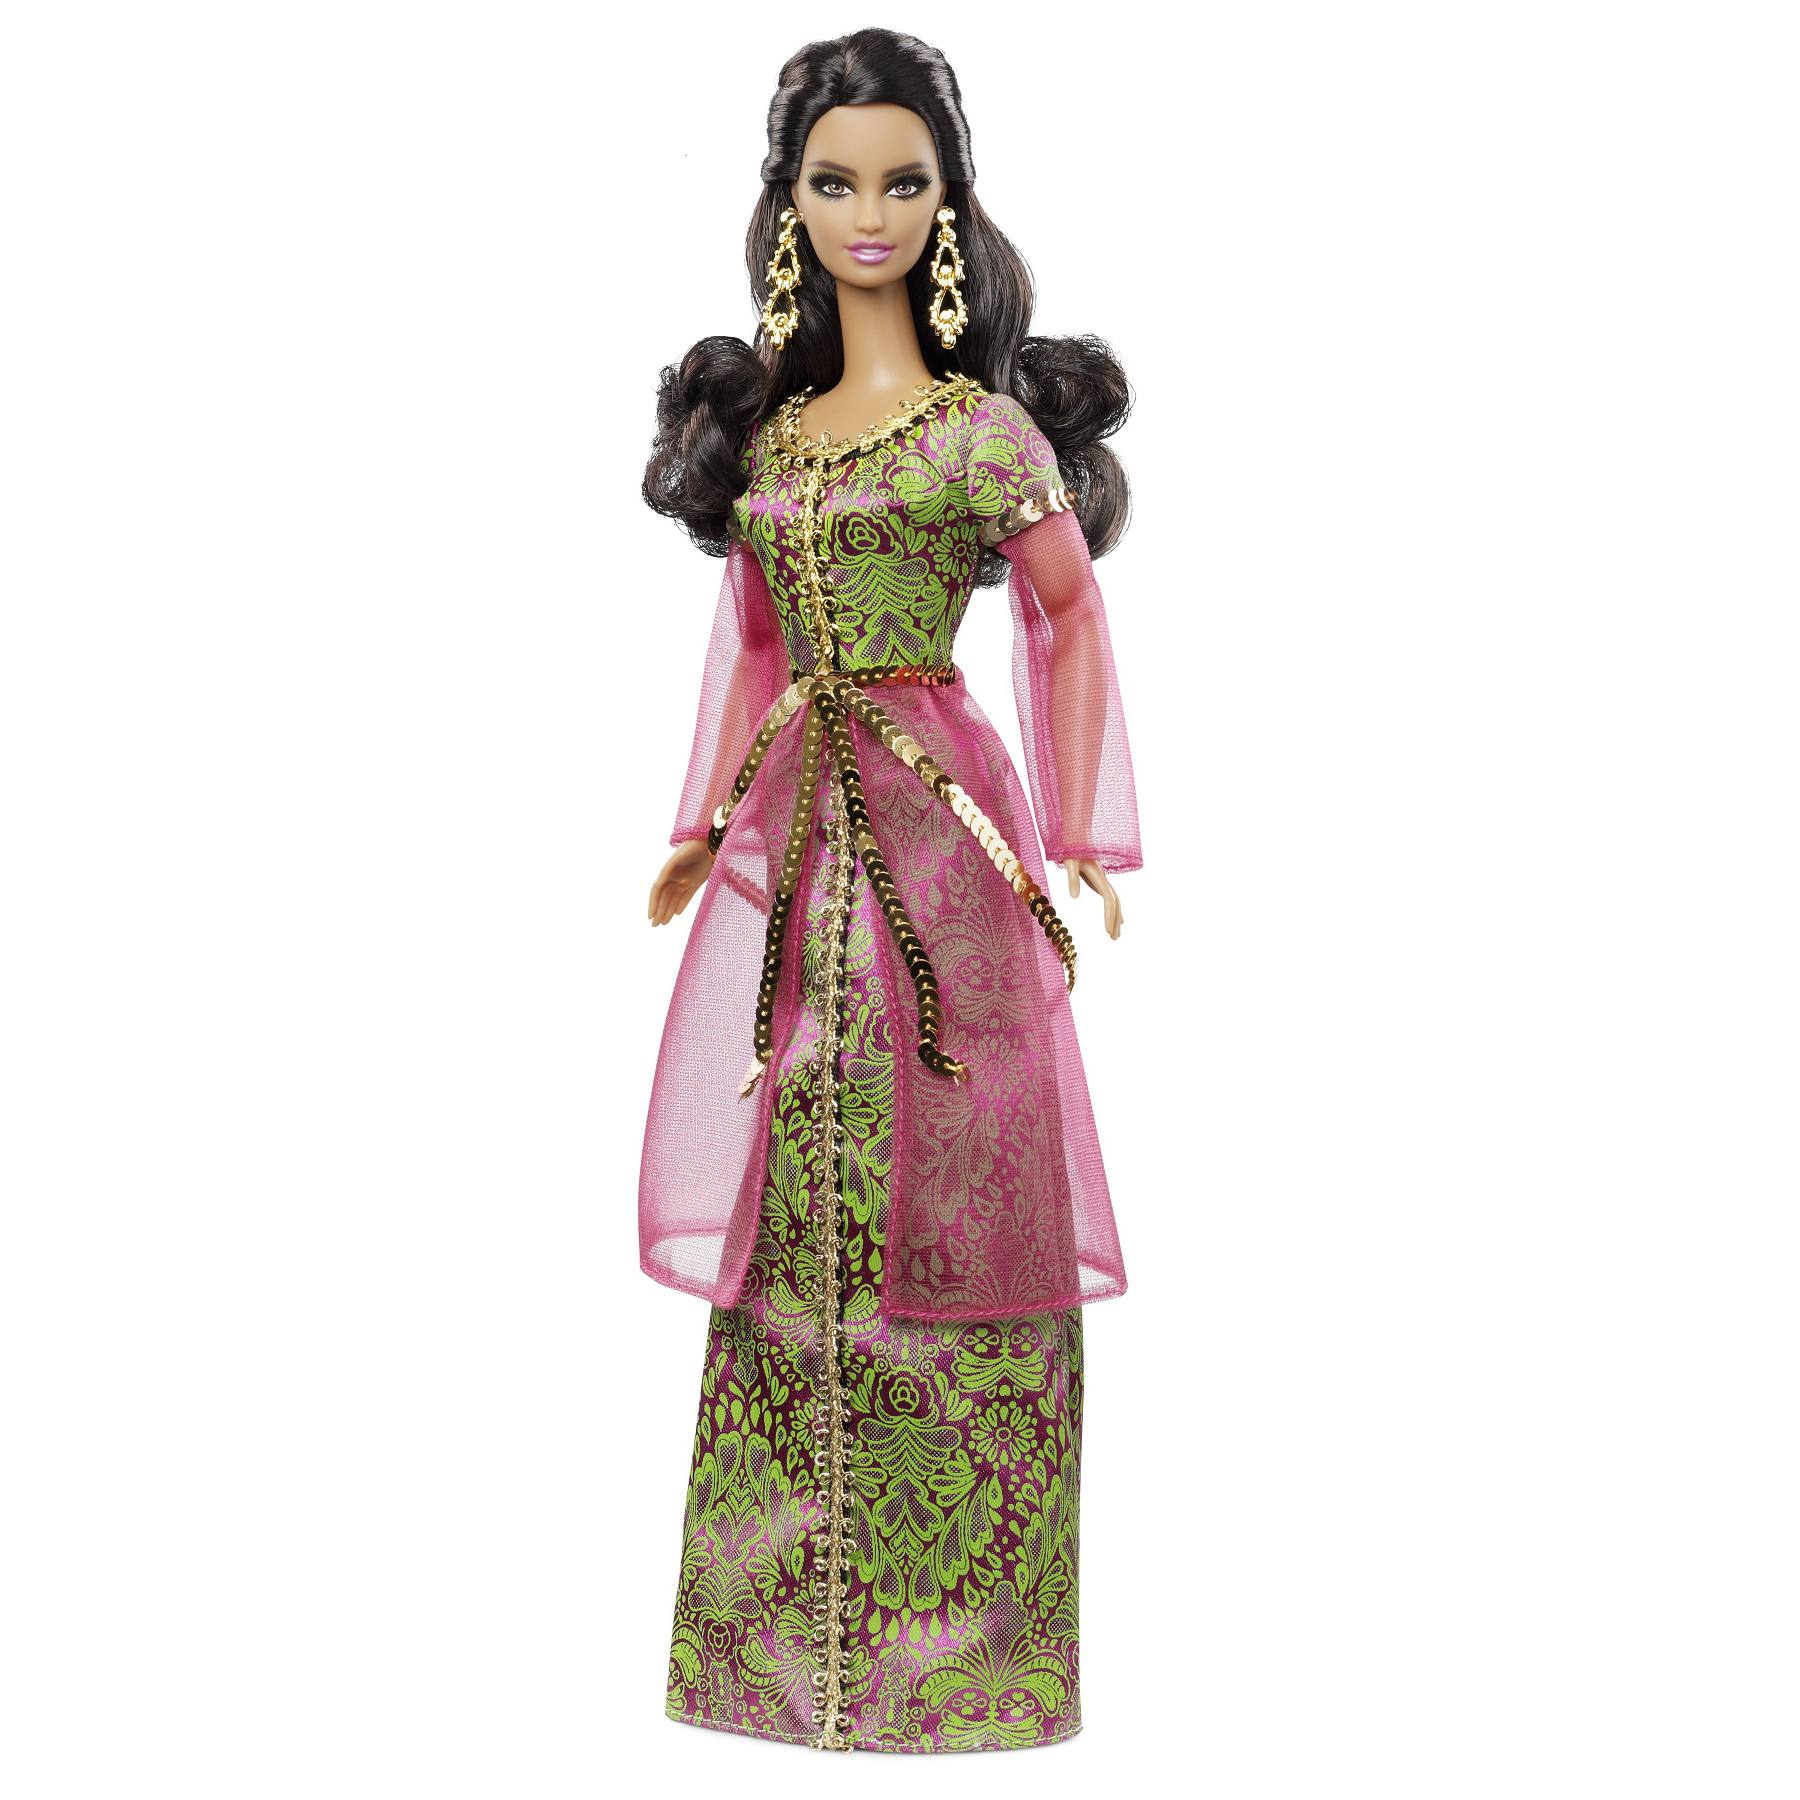 Barbie Collector - Dolls of the World - Marrocos